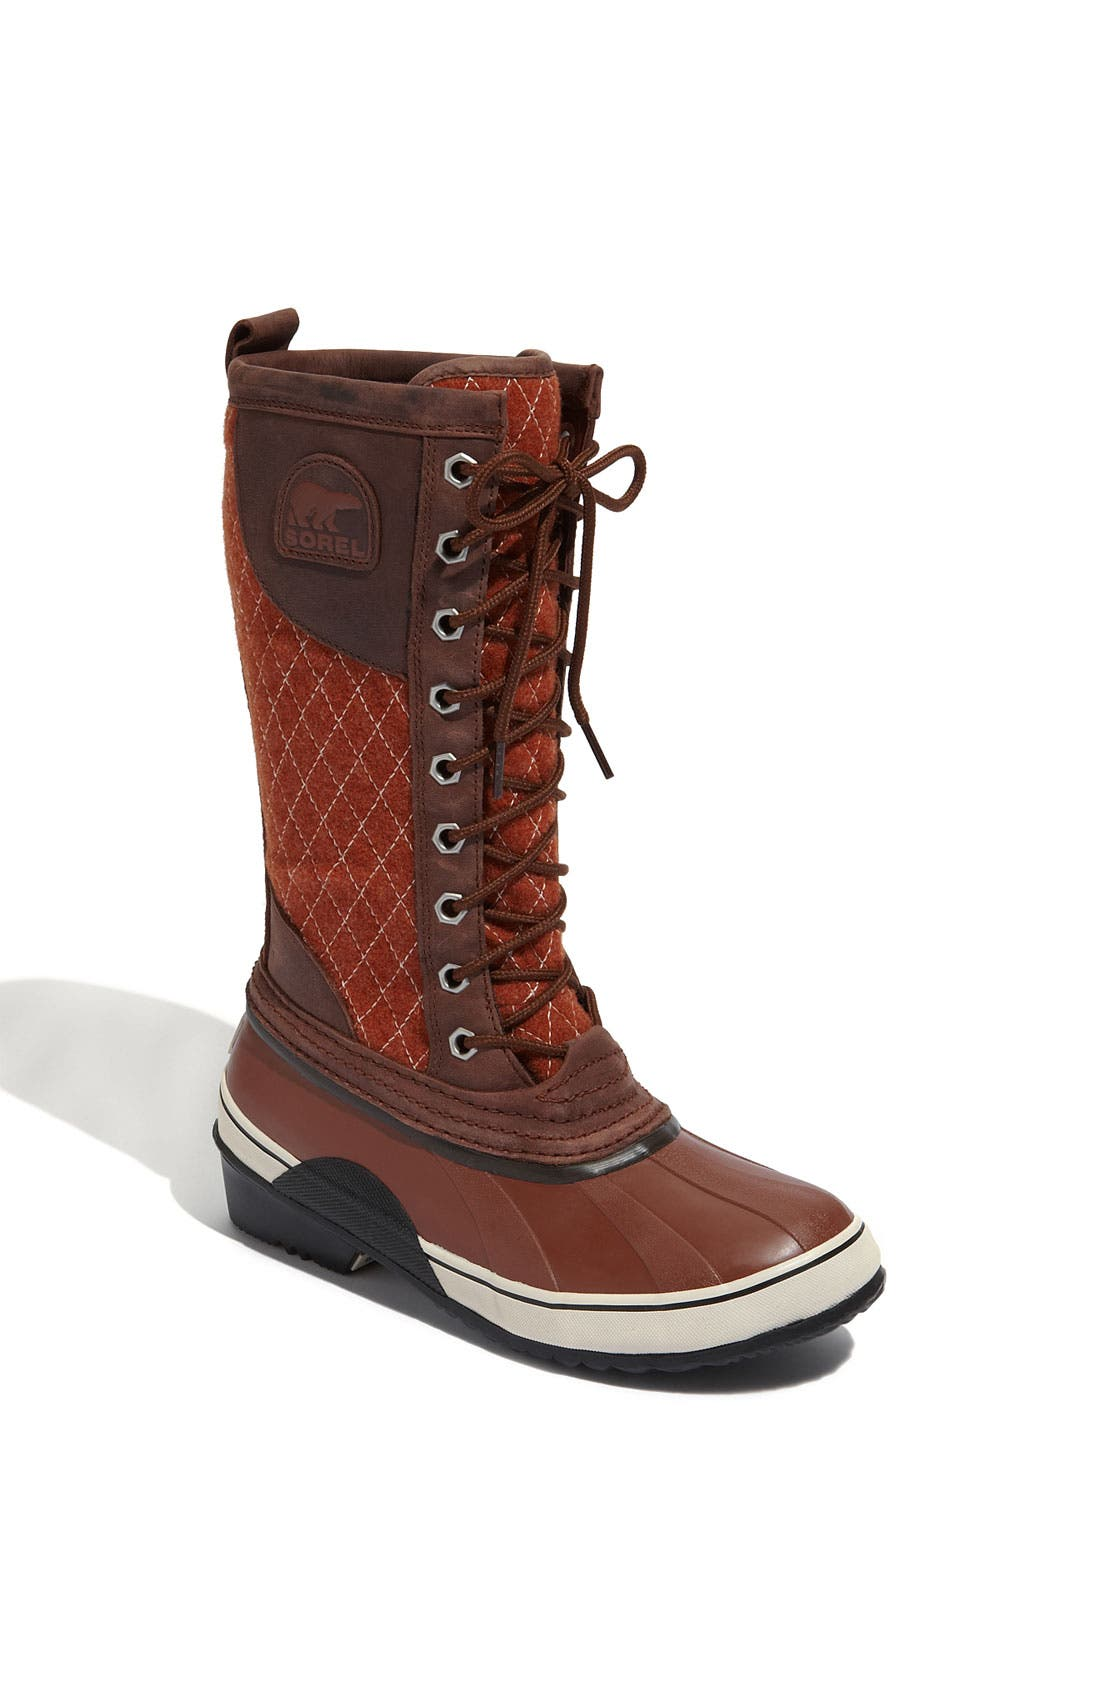 Alternate Image 1 Selected - Sorel 'Sorelli Tall' Boot